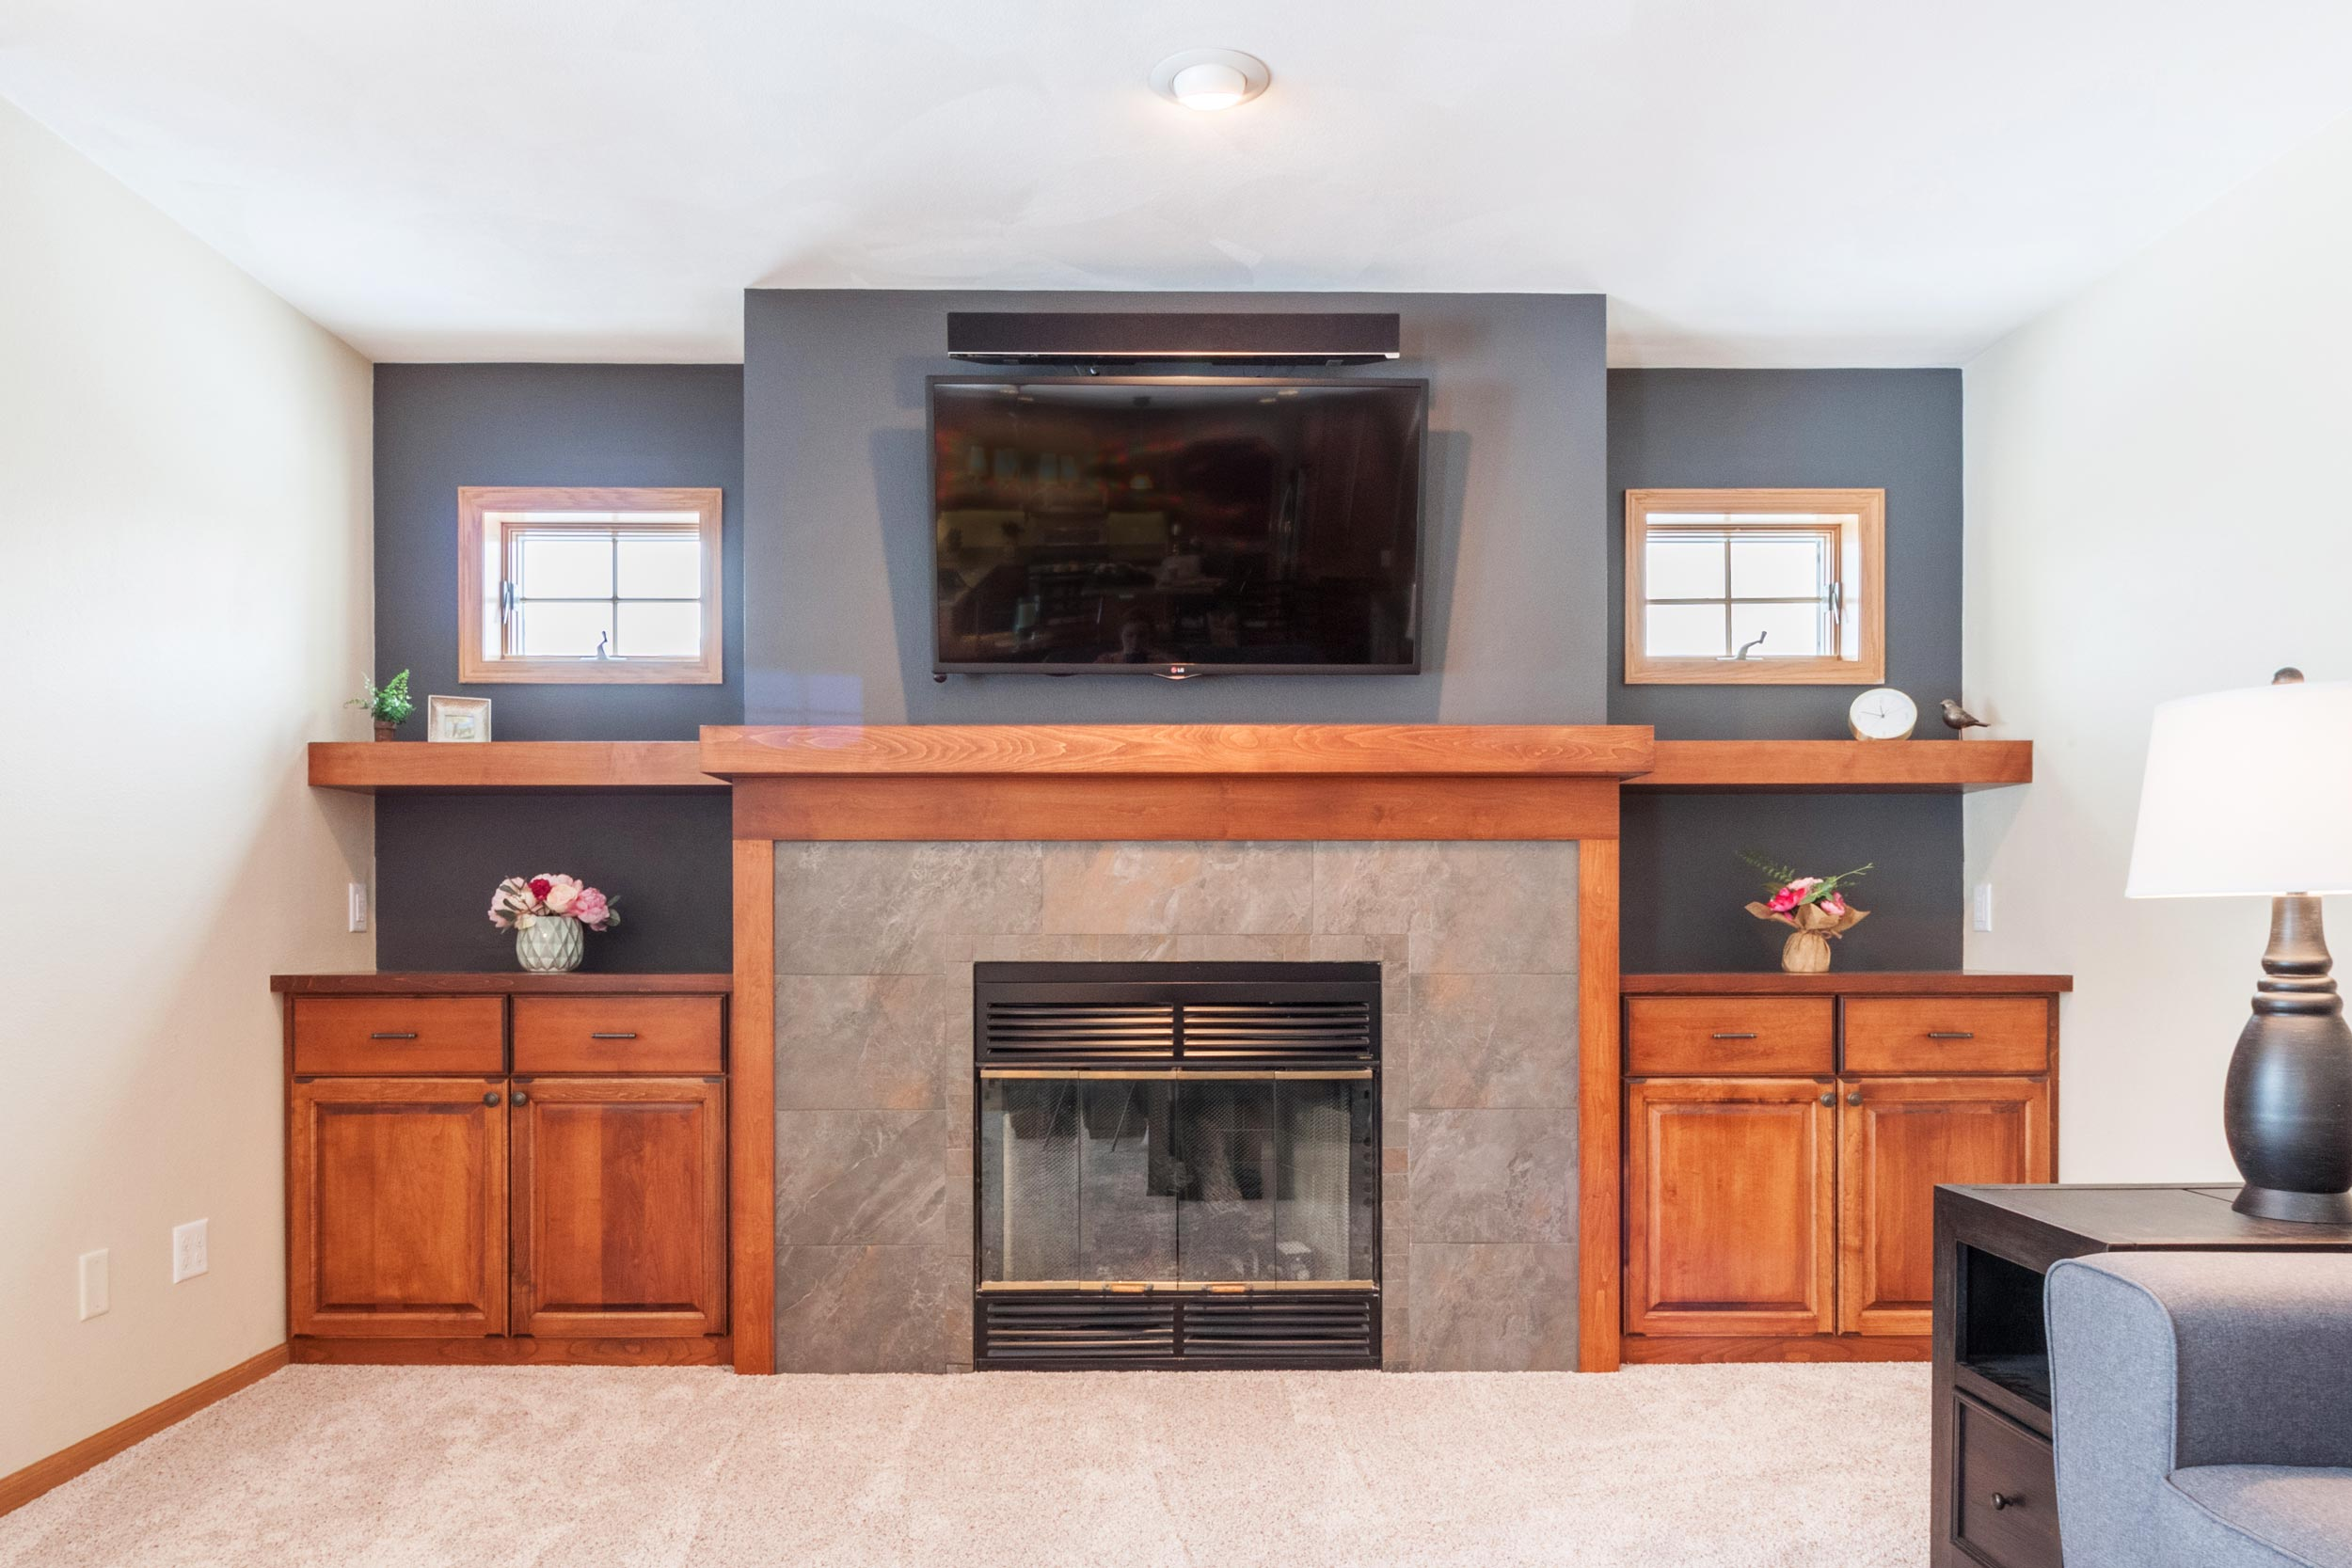 Craftsman Style Built-in Living room cabinets, and fireplace mantle.